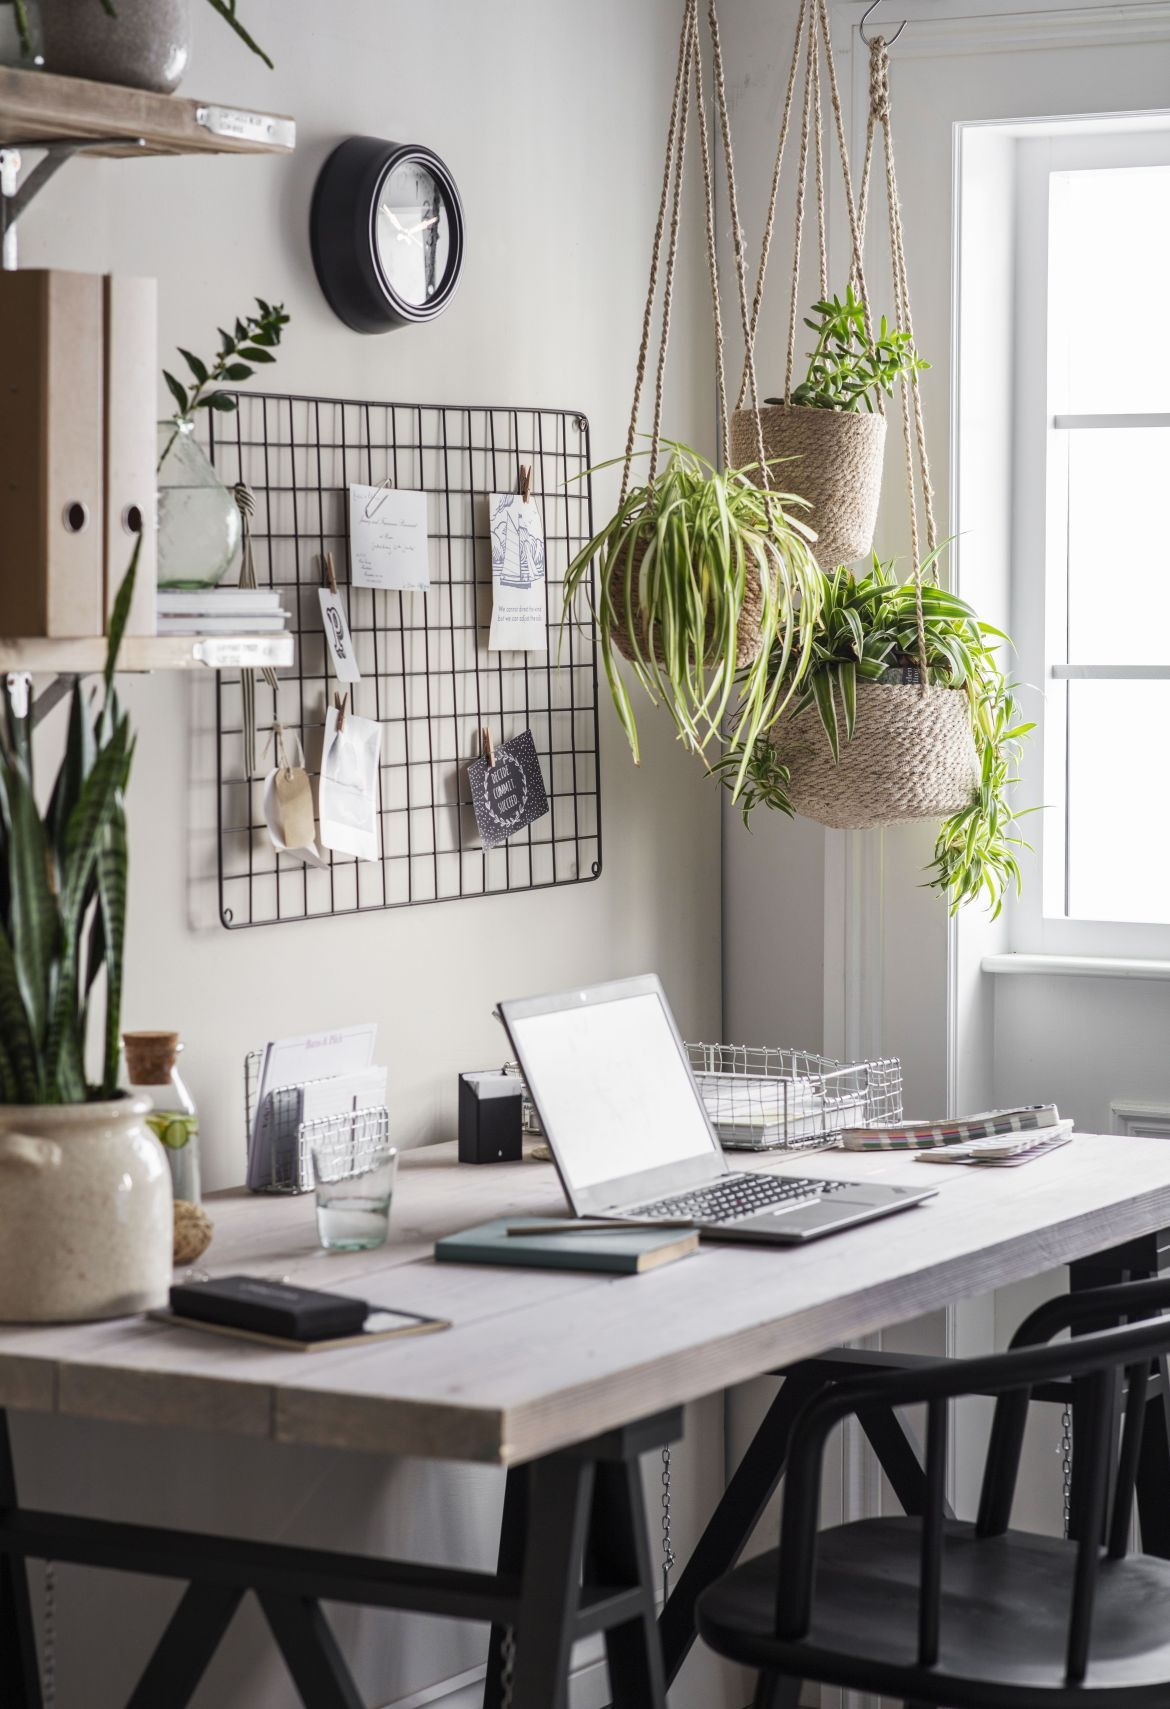 study space with plants